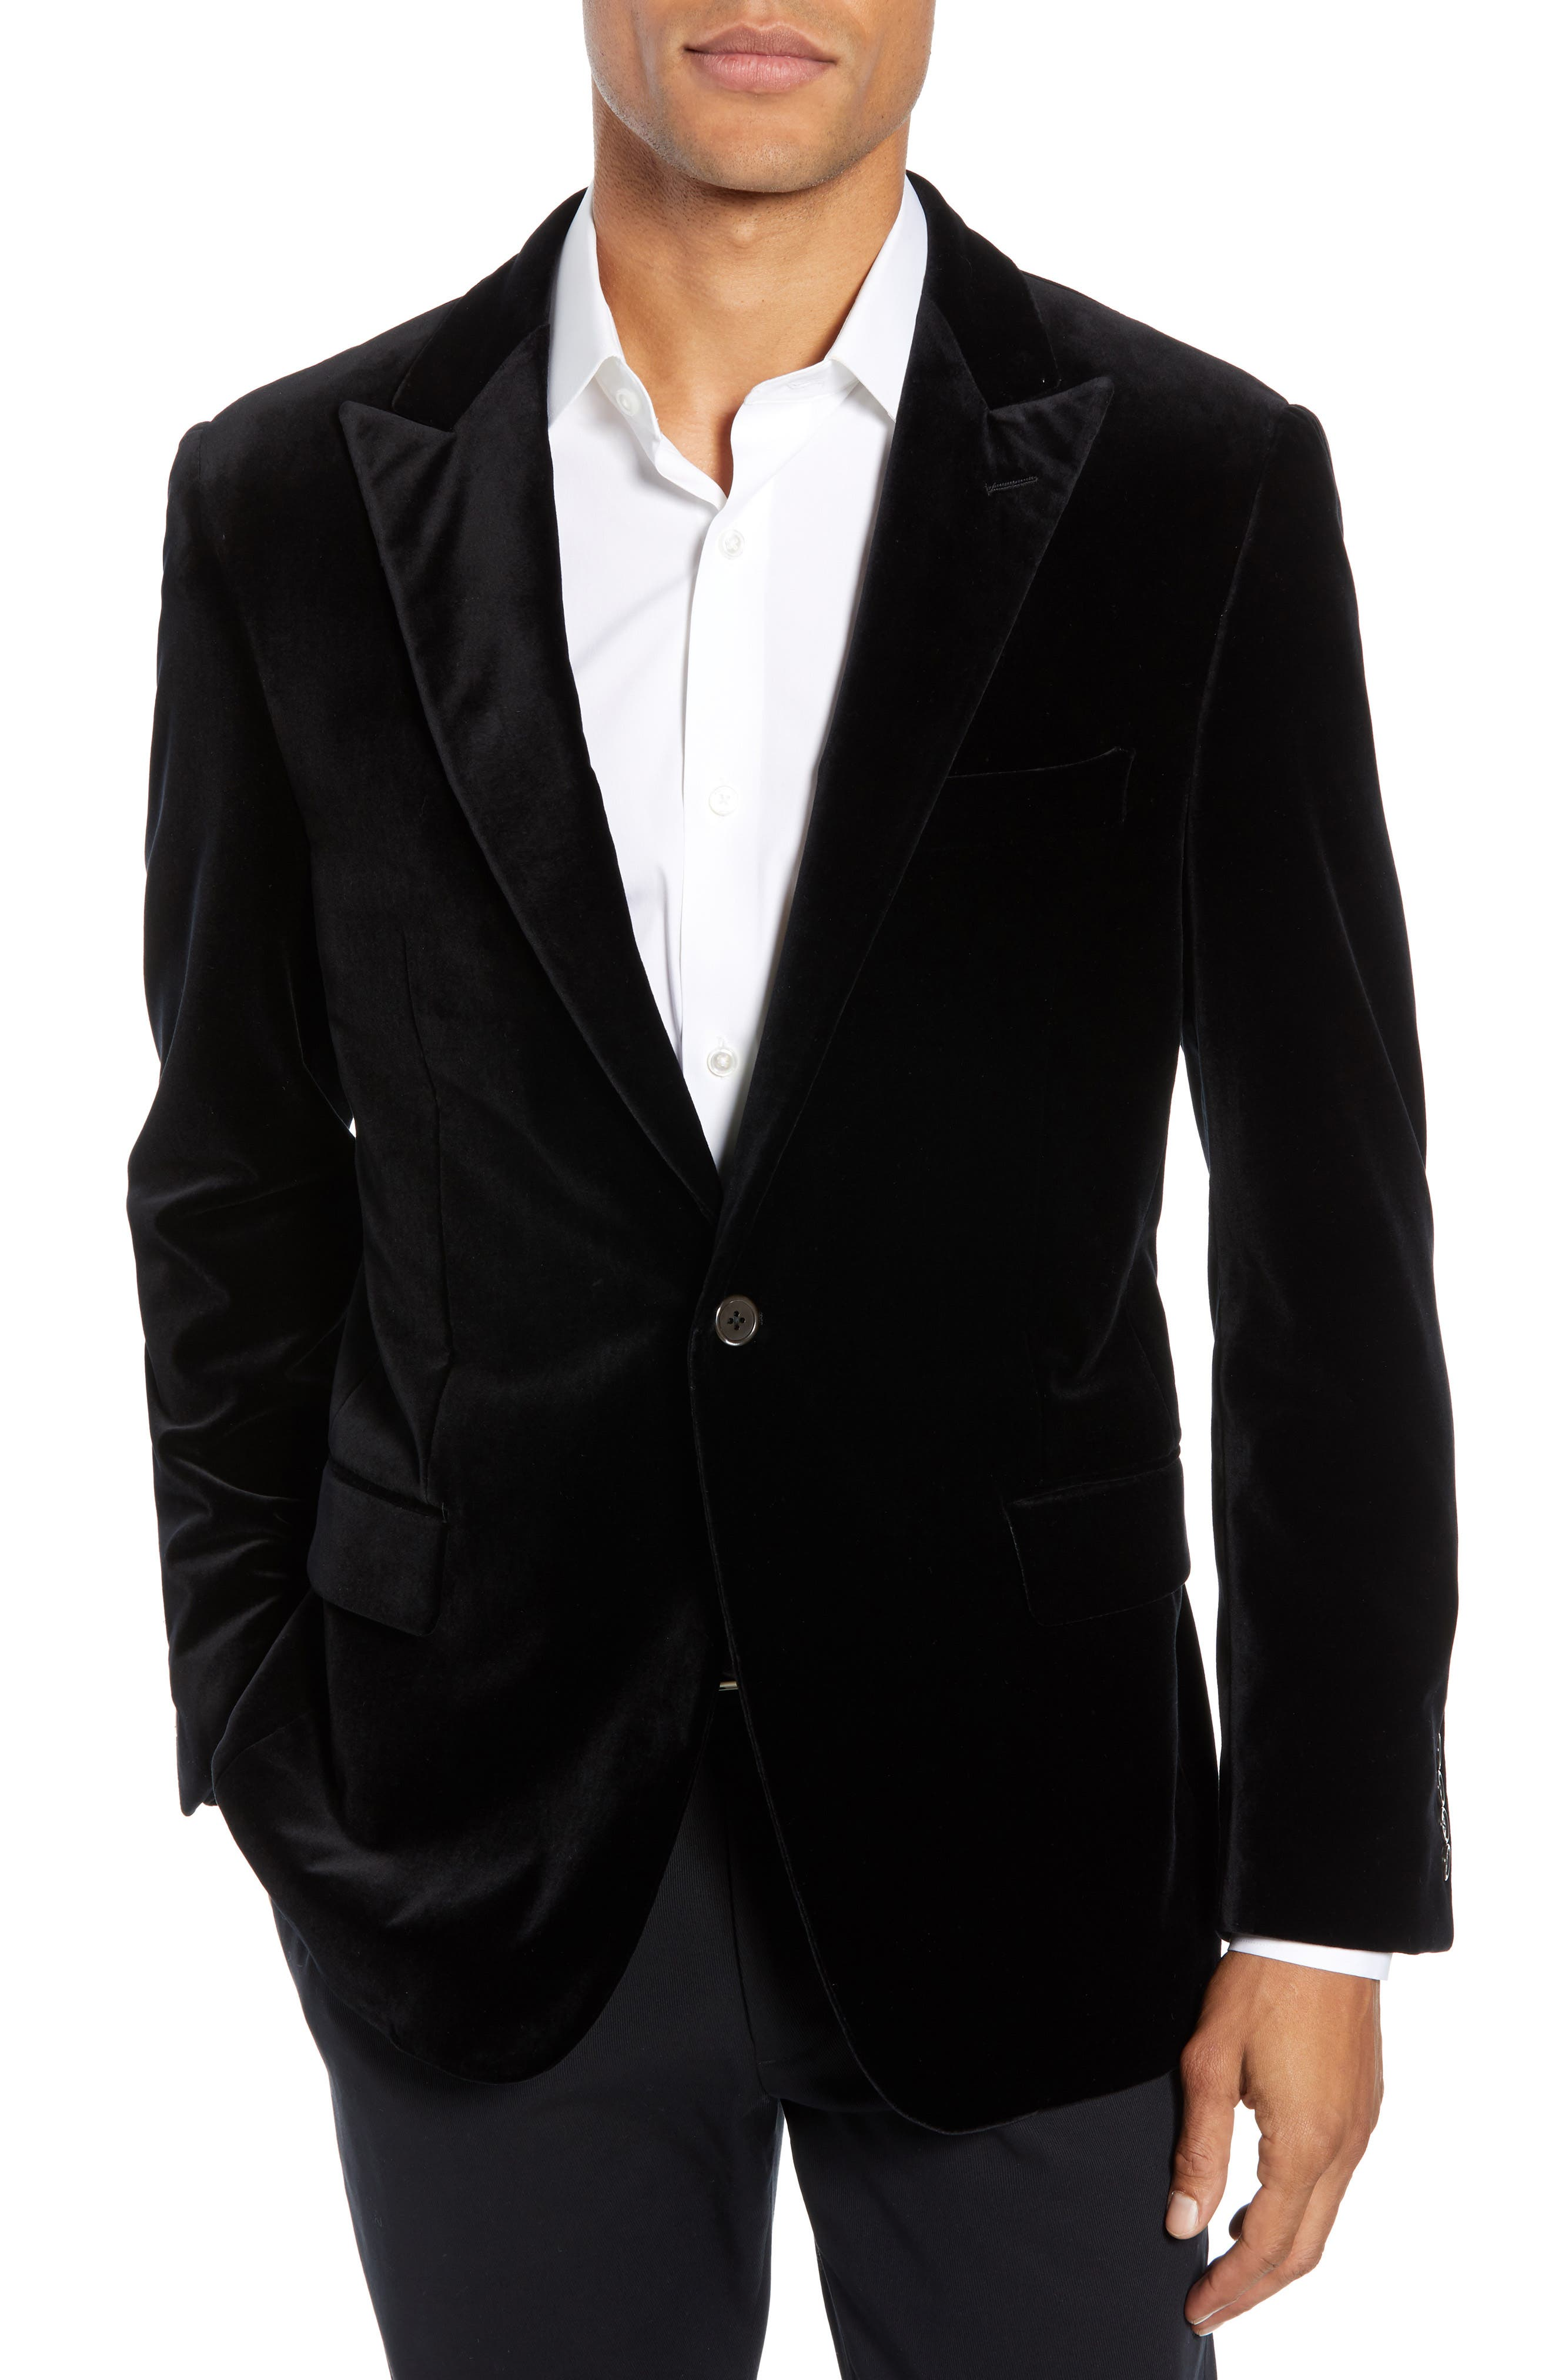 HICKEY FREEMAN Classic Fit Stretch Cotton Velvet Dinner Jacket in Black